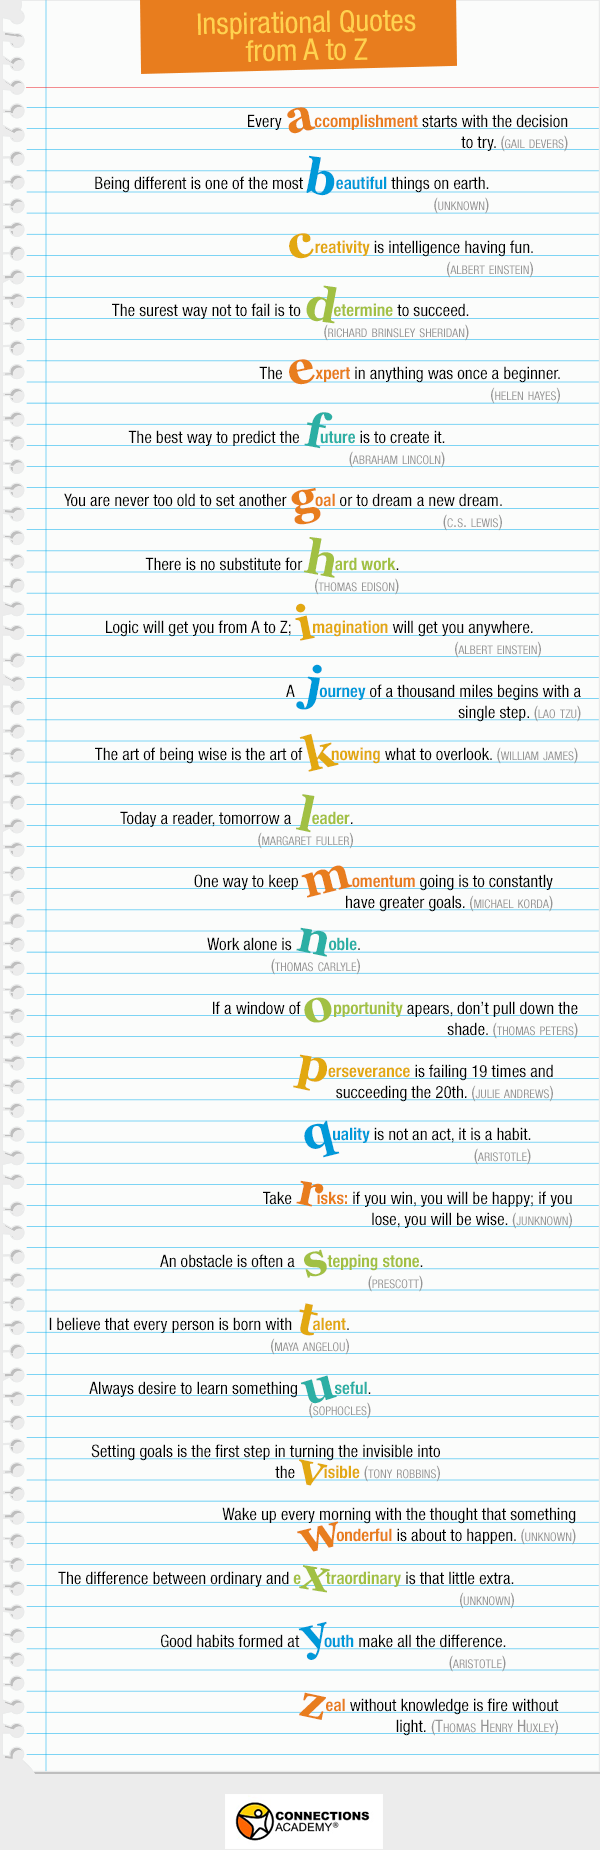 Quote List Inspirational Quotes A To Z  Harbur Middle School